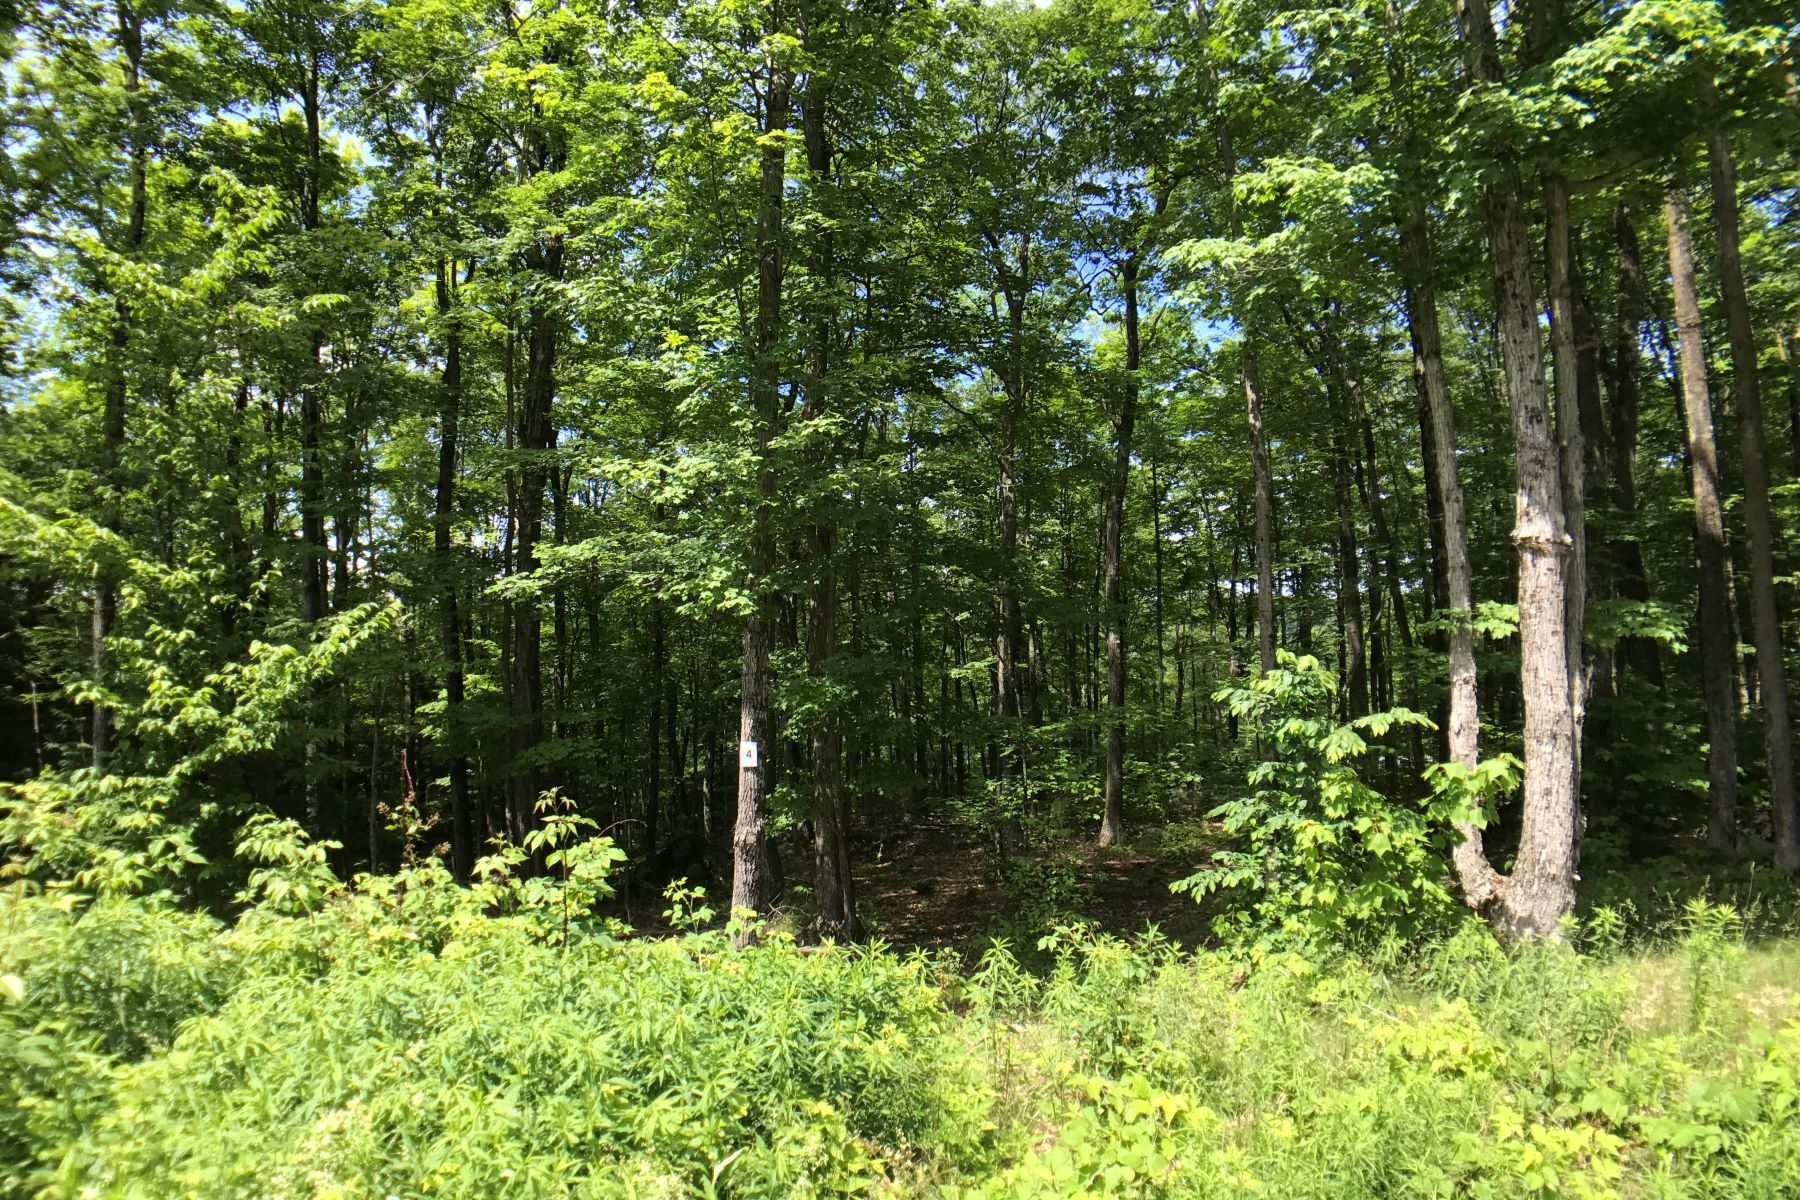 Land for Sale at Affordable Ready-to-Build Parcel with Shared Waterfront Access Lot #4, Moose Dr Lee, Massachusetts 01238 United States